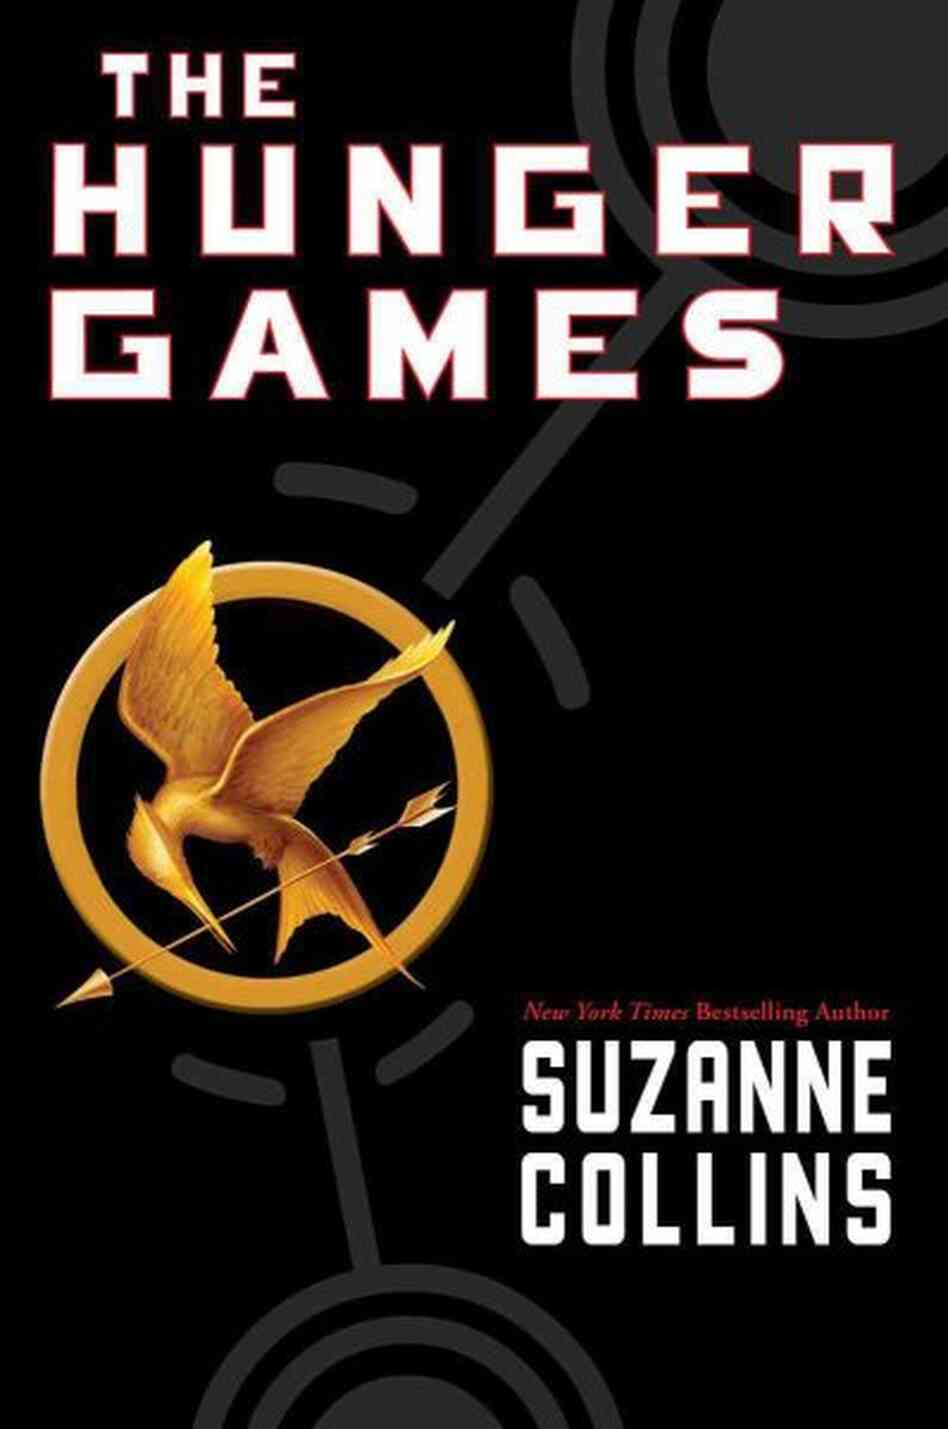 Book Cover Series Games ~ The hunger games npr